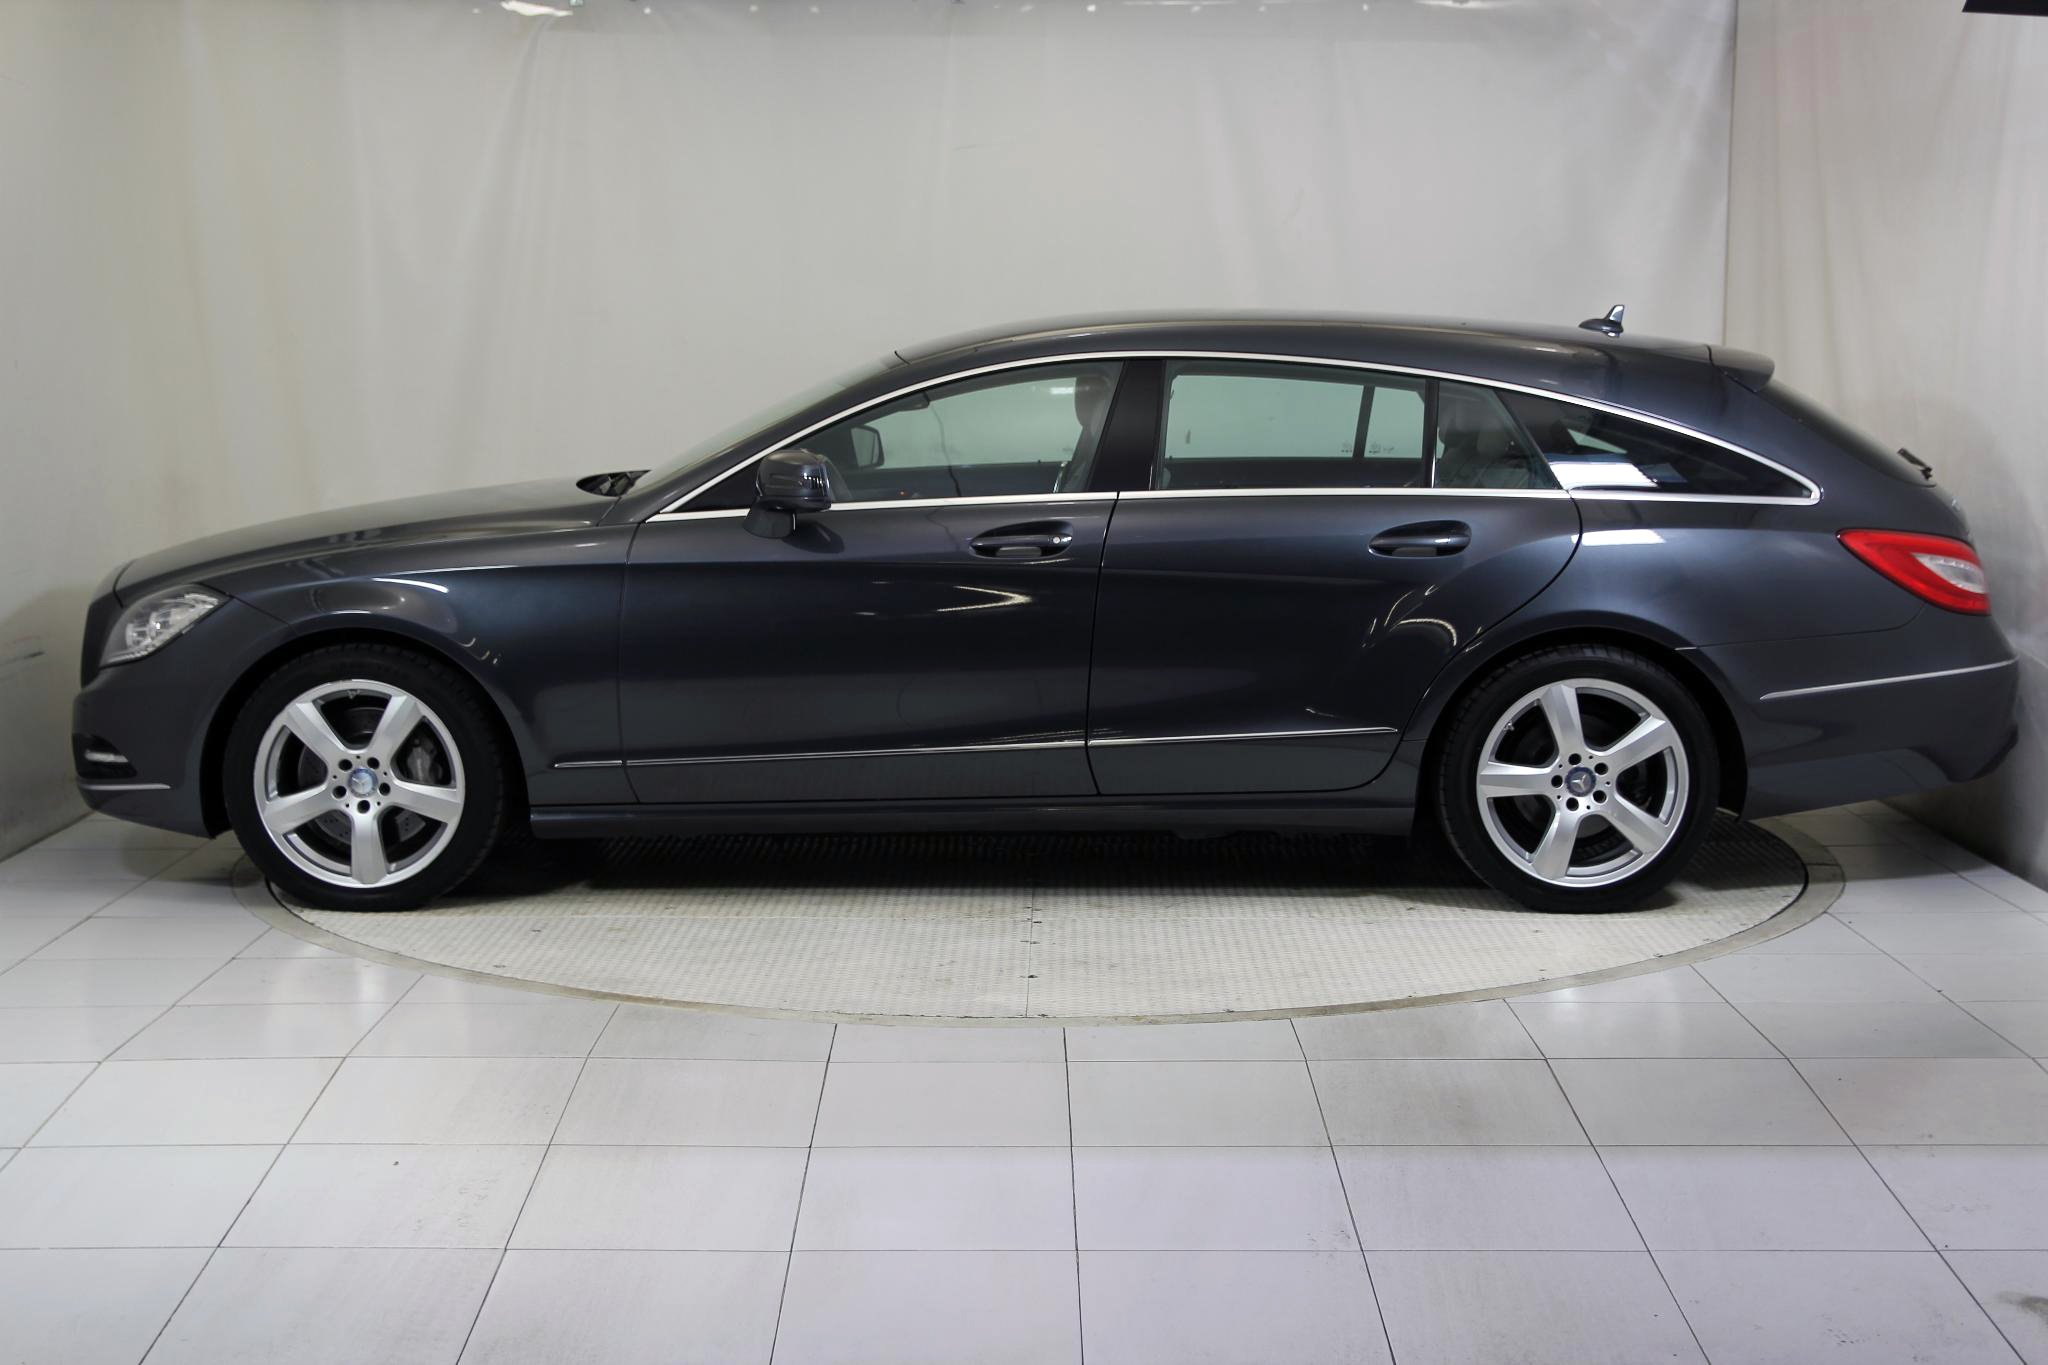 Mercedes-Benz Clase CLS CLS SHOOTING BRAKE 350 CDI AUTO imagen 9